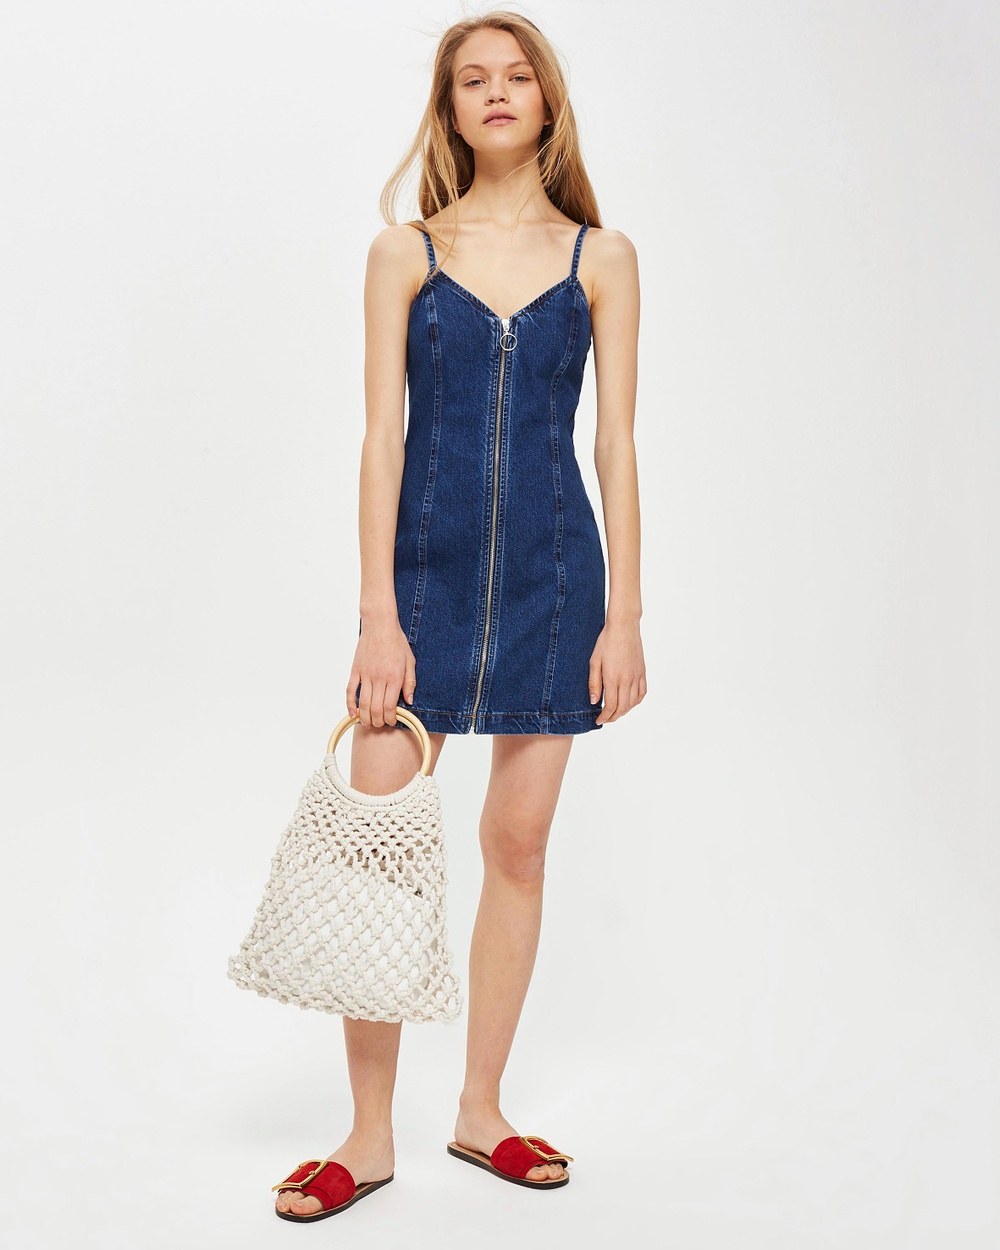 TOPSHOP MOTO Zip Denim Dress Dresses Mid Denim MOTO Zip Denim Dress